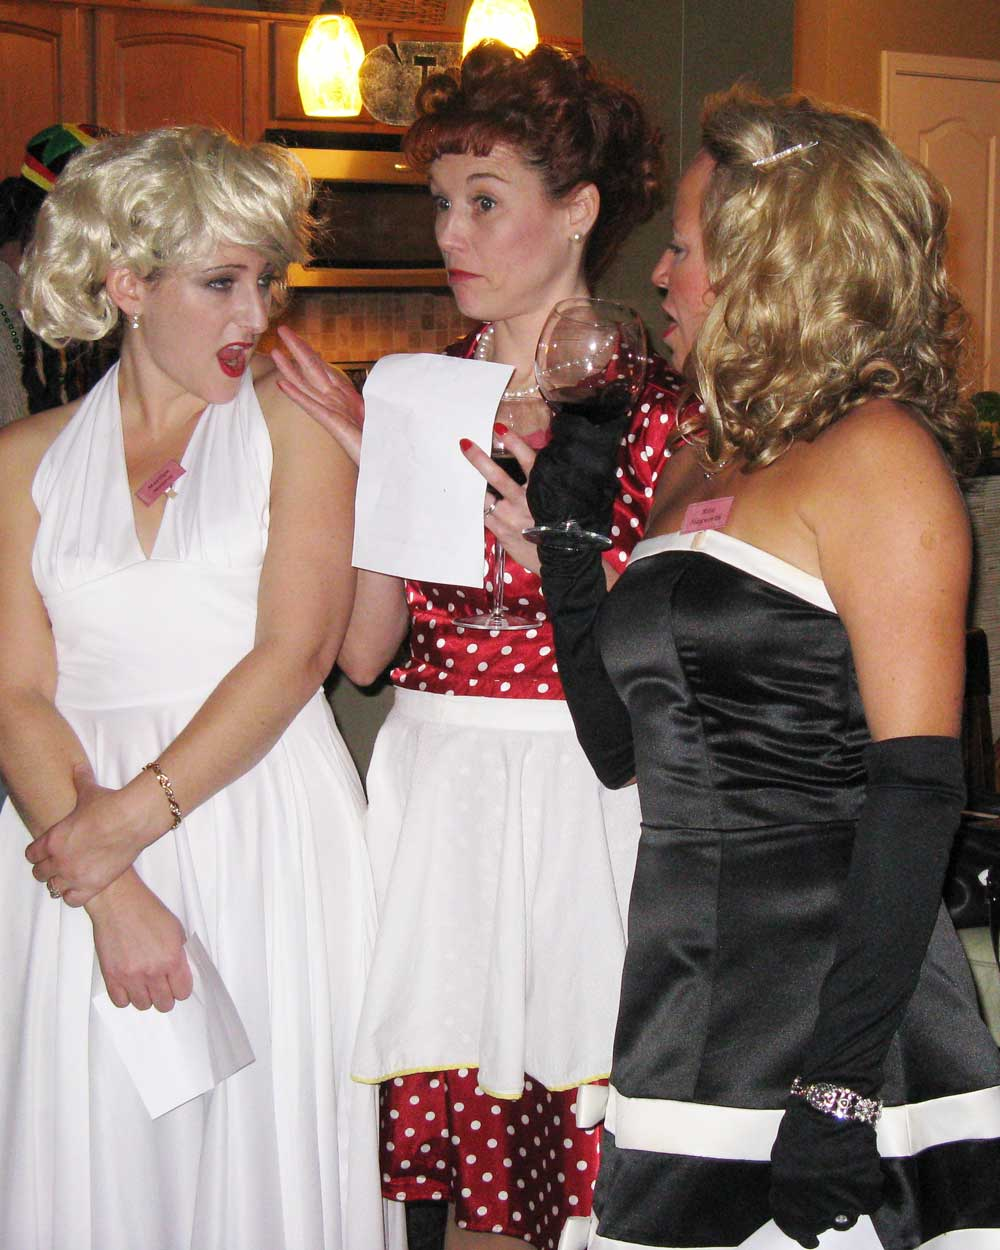 Girls at the 60s party